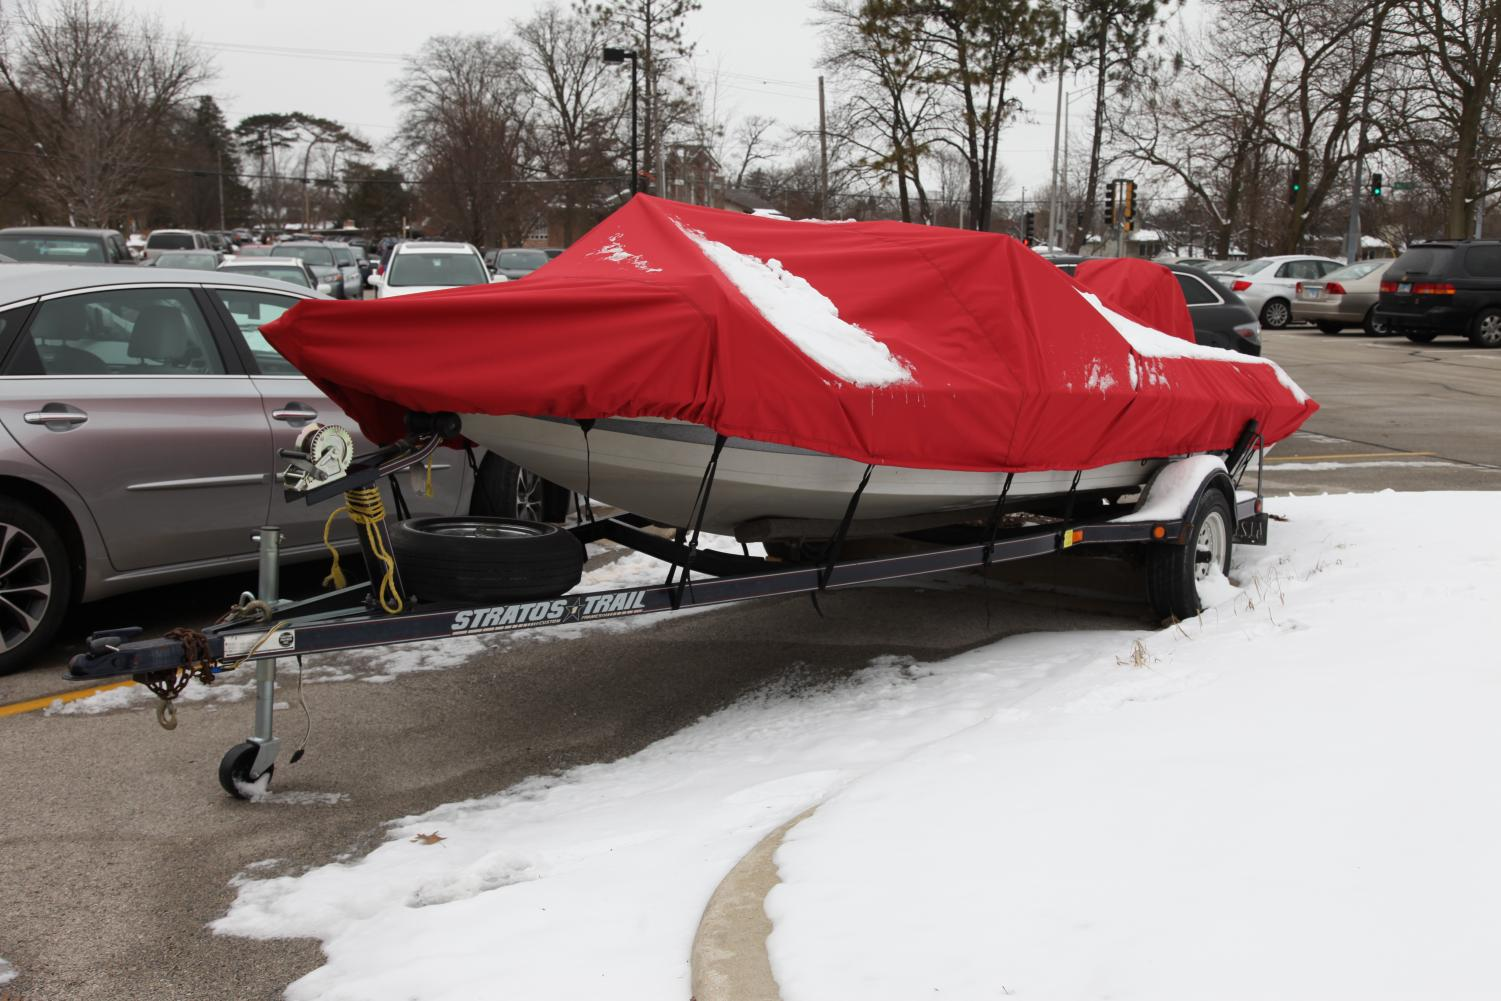 """""""The school requested a place to store the boat,"""" said Steve Mathis, Building and Grounds director. """"We had an existing concrete pad next to the metal building at the end of the football field, and it made sense and was cost effective to use the existing building."""""""